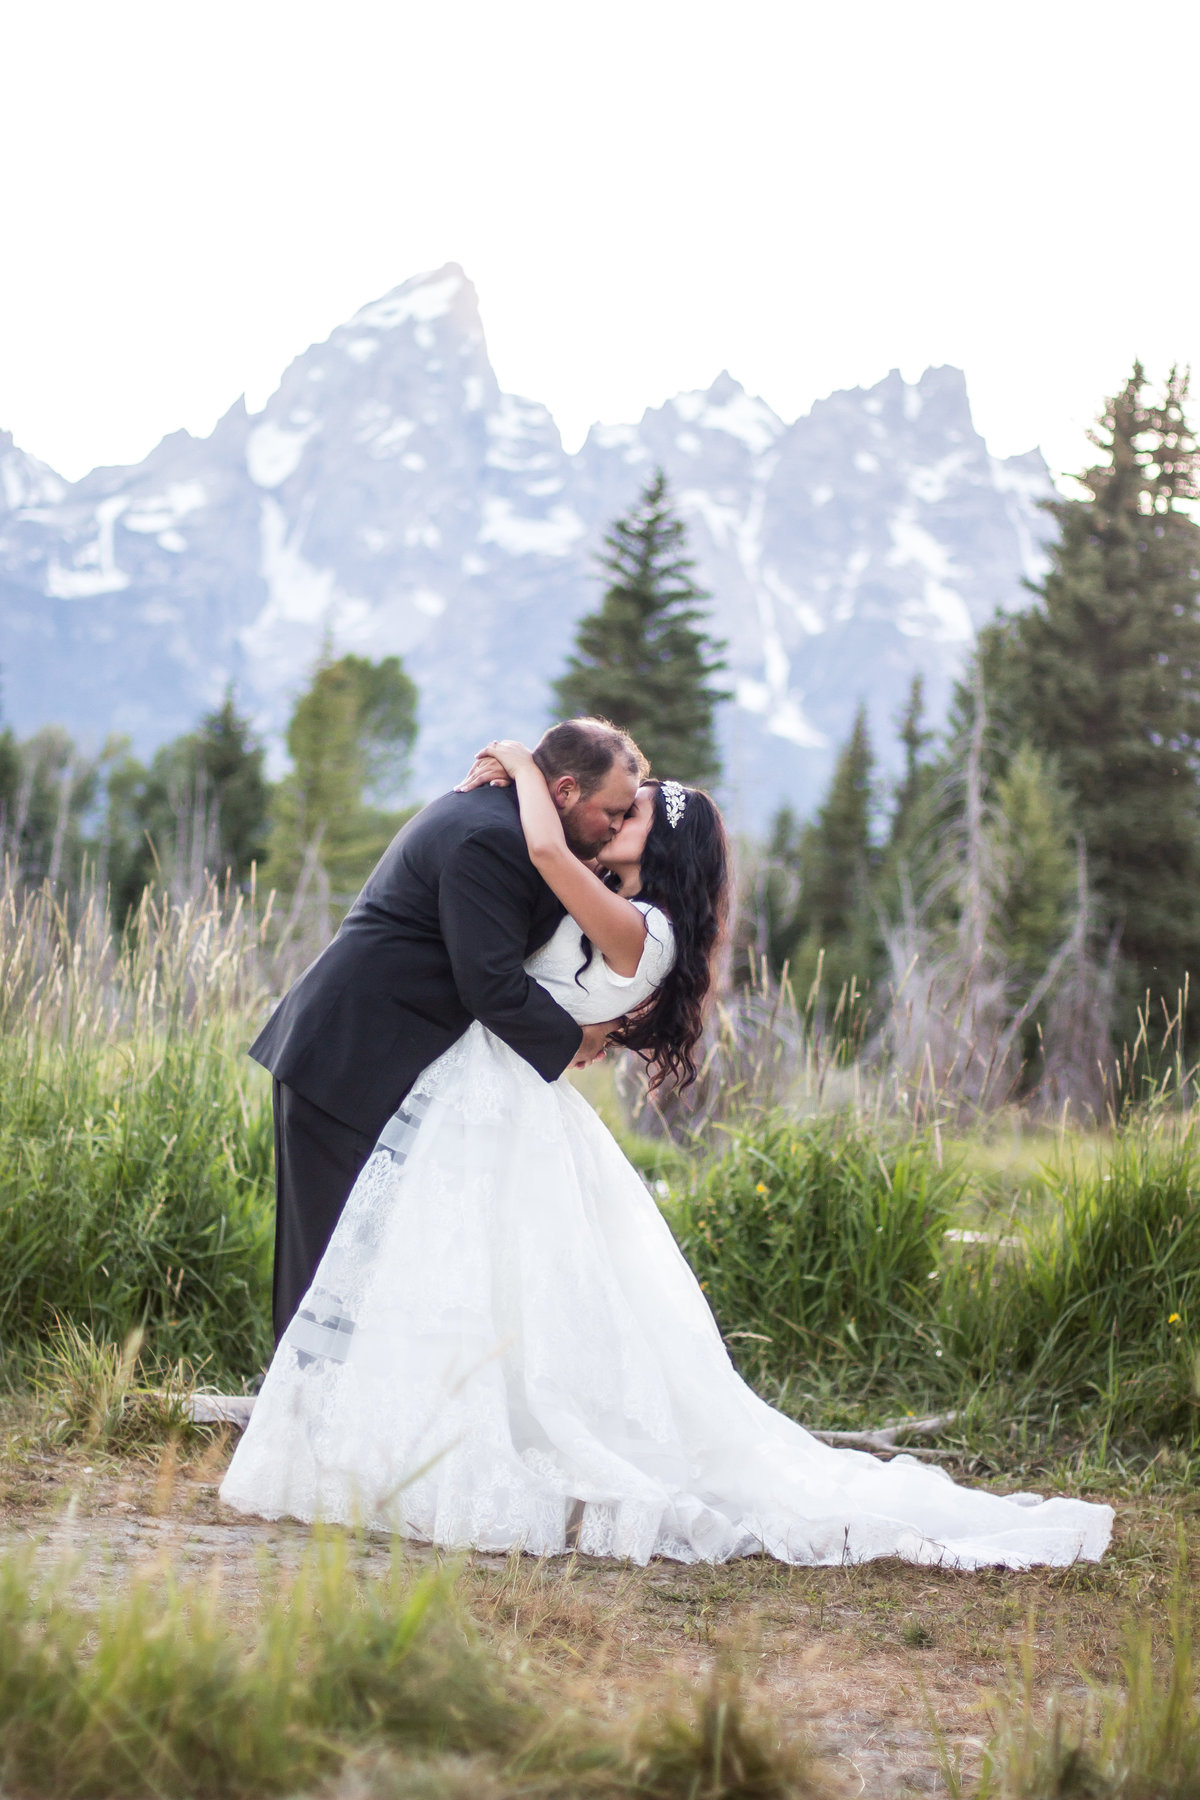 Jackson Hole Wyoming, teton canyon, engagement ring, grand targhee resort,  Teton Valley, Driggs Idaho, wedding photographer, wedding event, wedding session, grand tetons, moose, wyoming, wedding photographer,